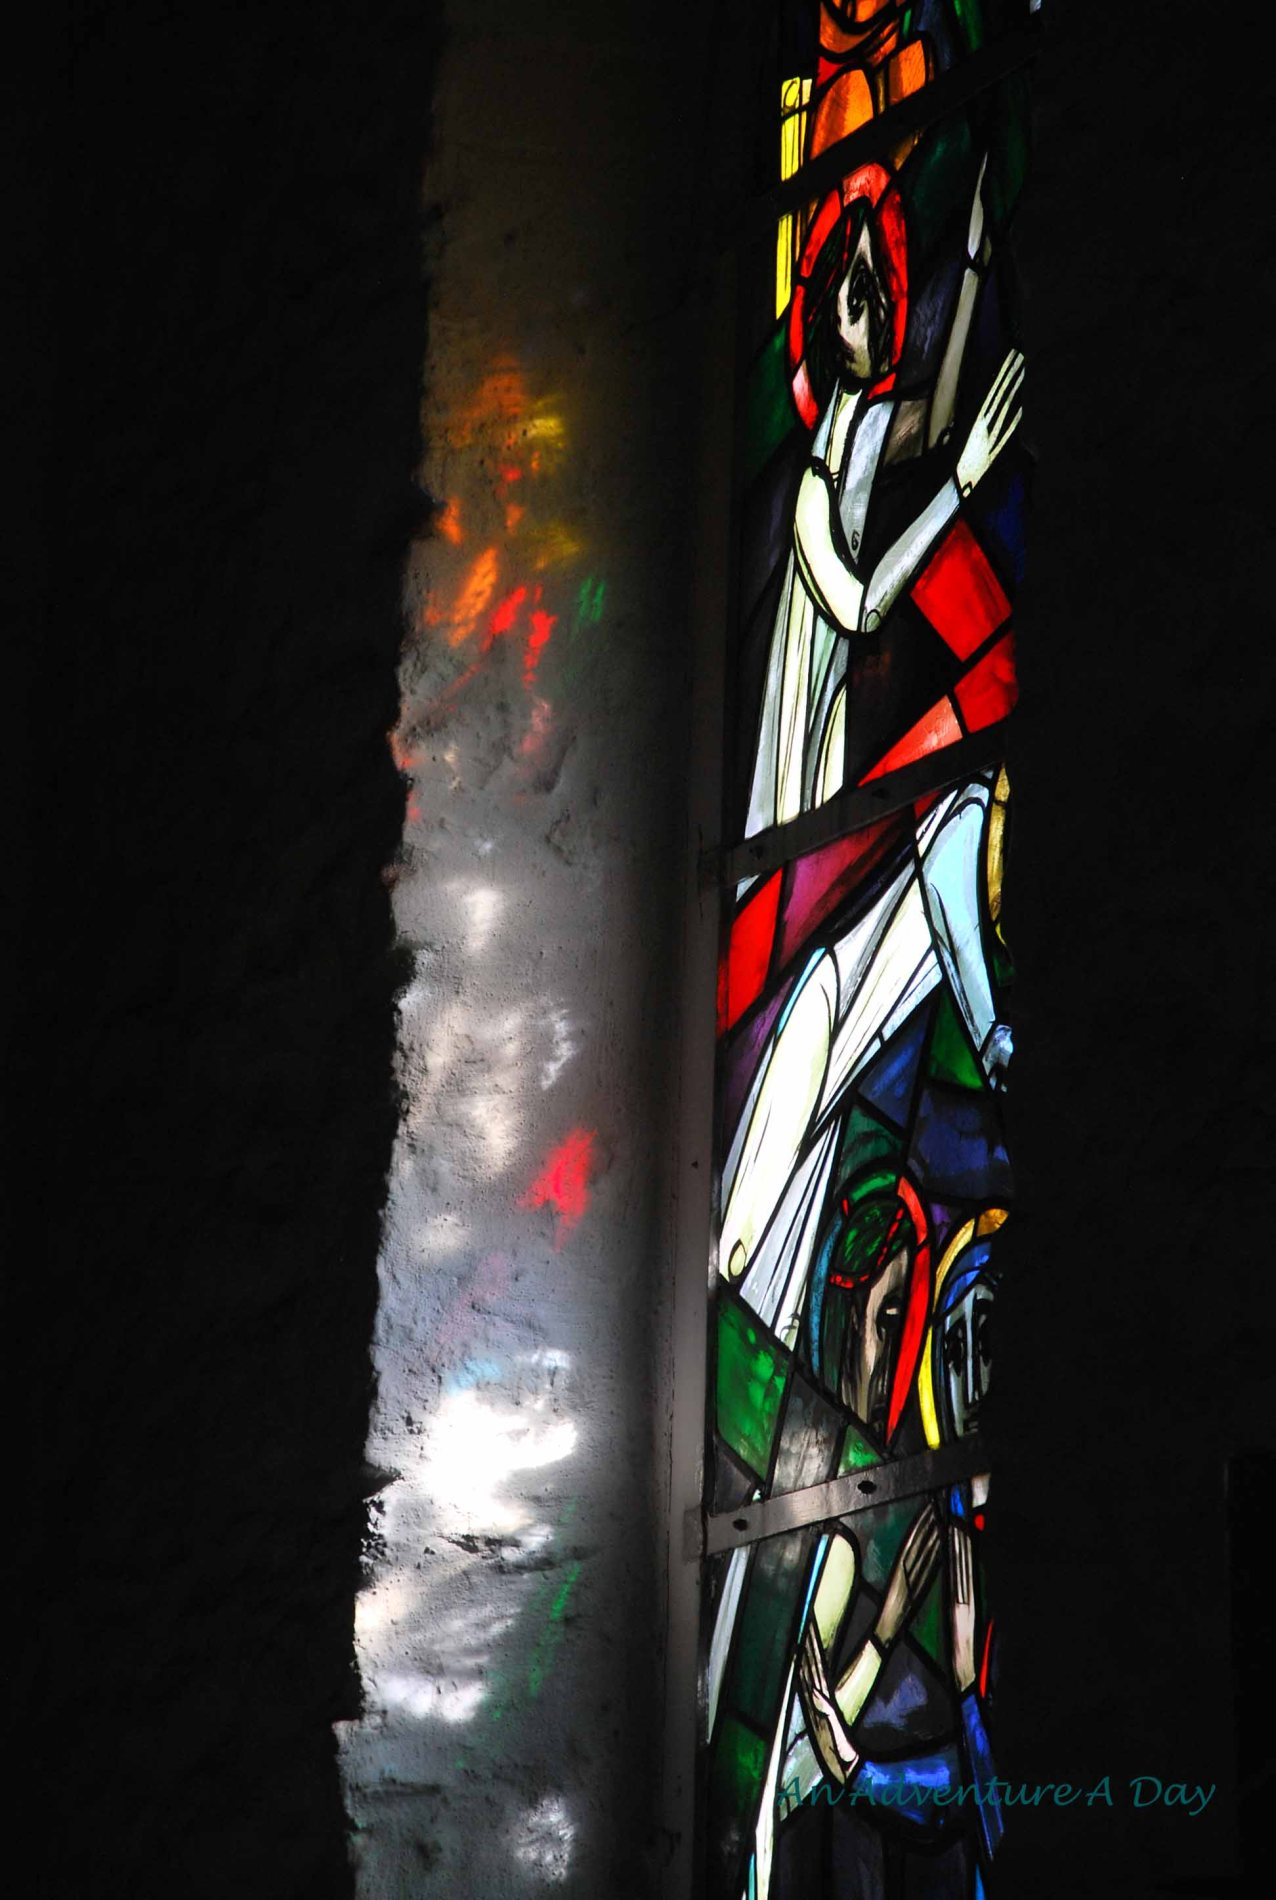 Light shining through a stained glass window is always a lovely sight